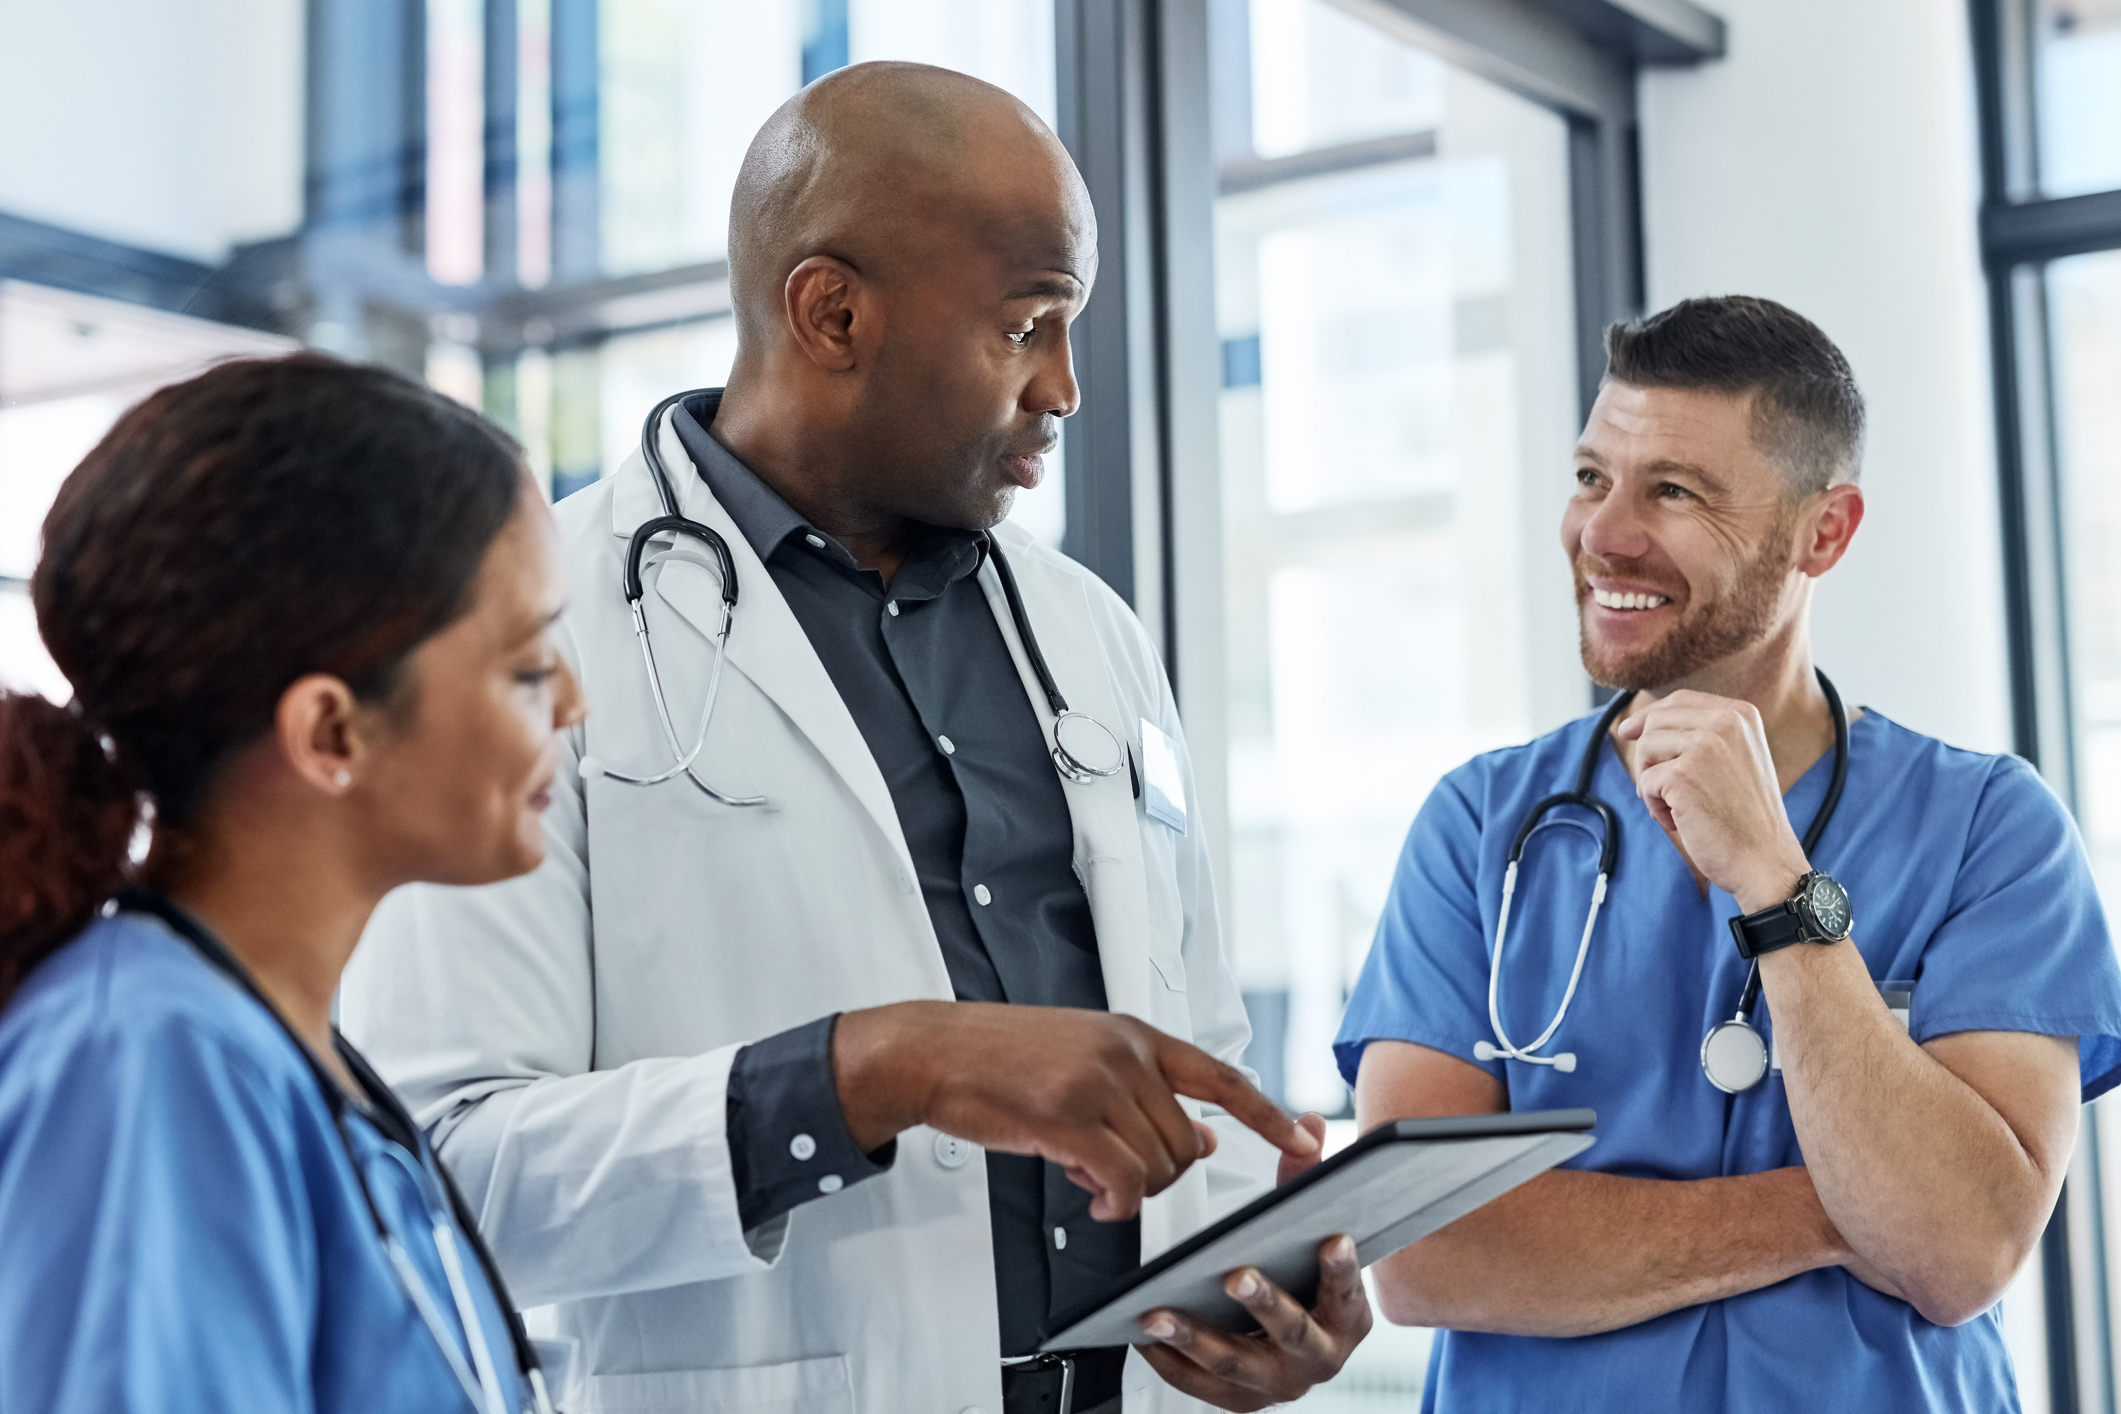 Diversity and inclusion in healthcare settings